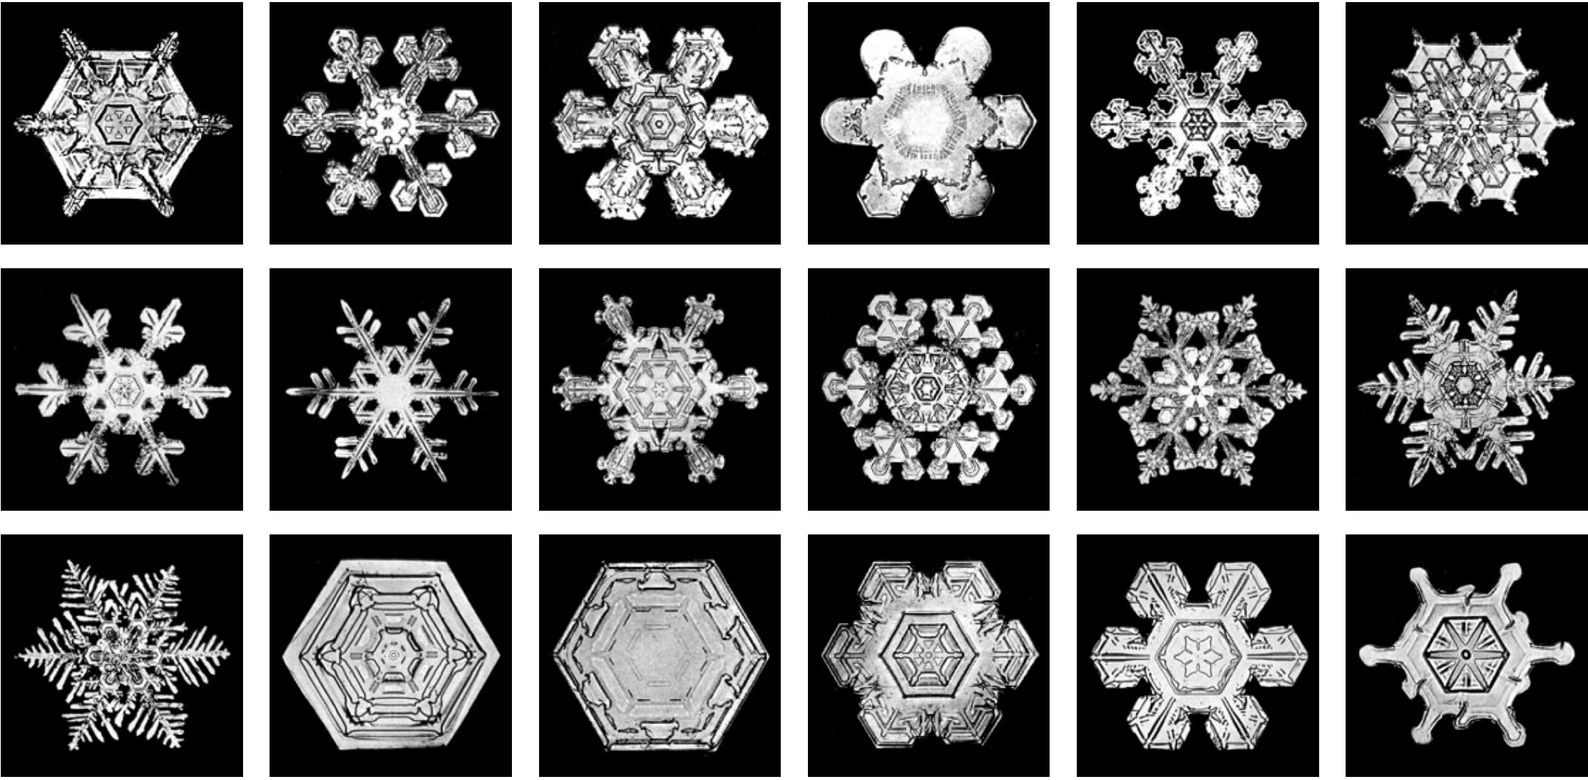 Examples of typical forms of snowflakes